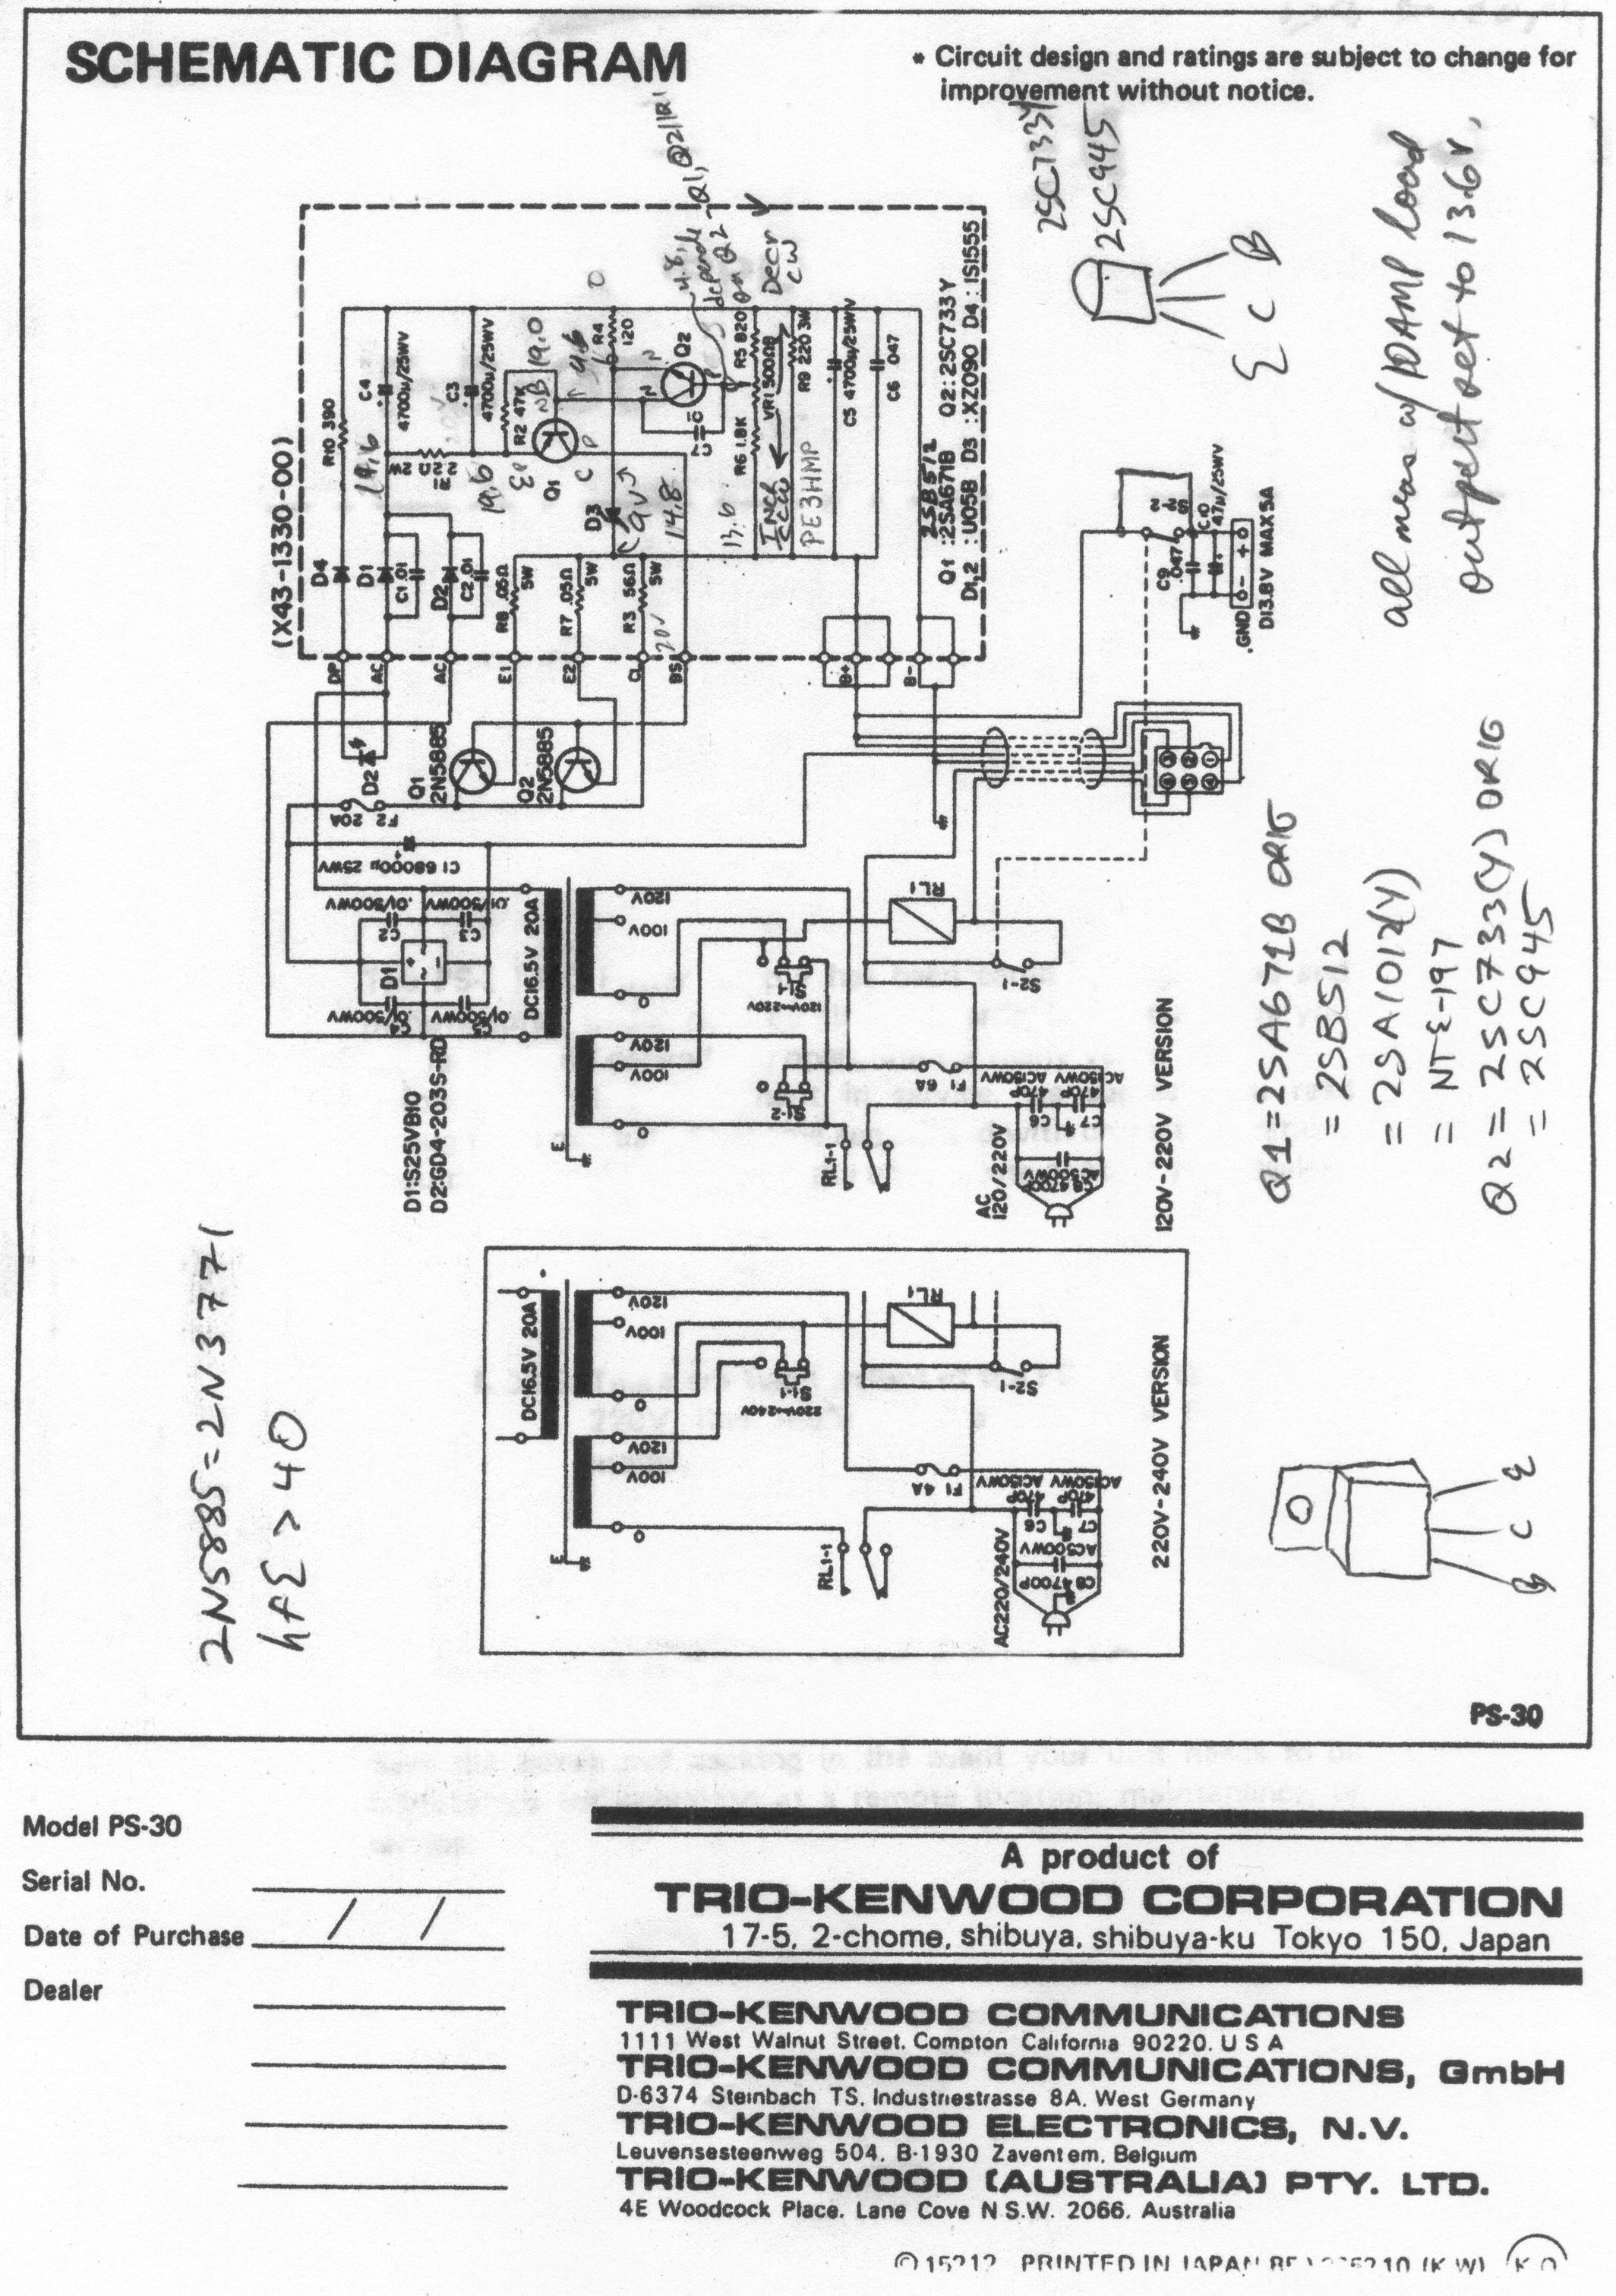 ... Schematics, JPG, 0.862 MB, download